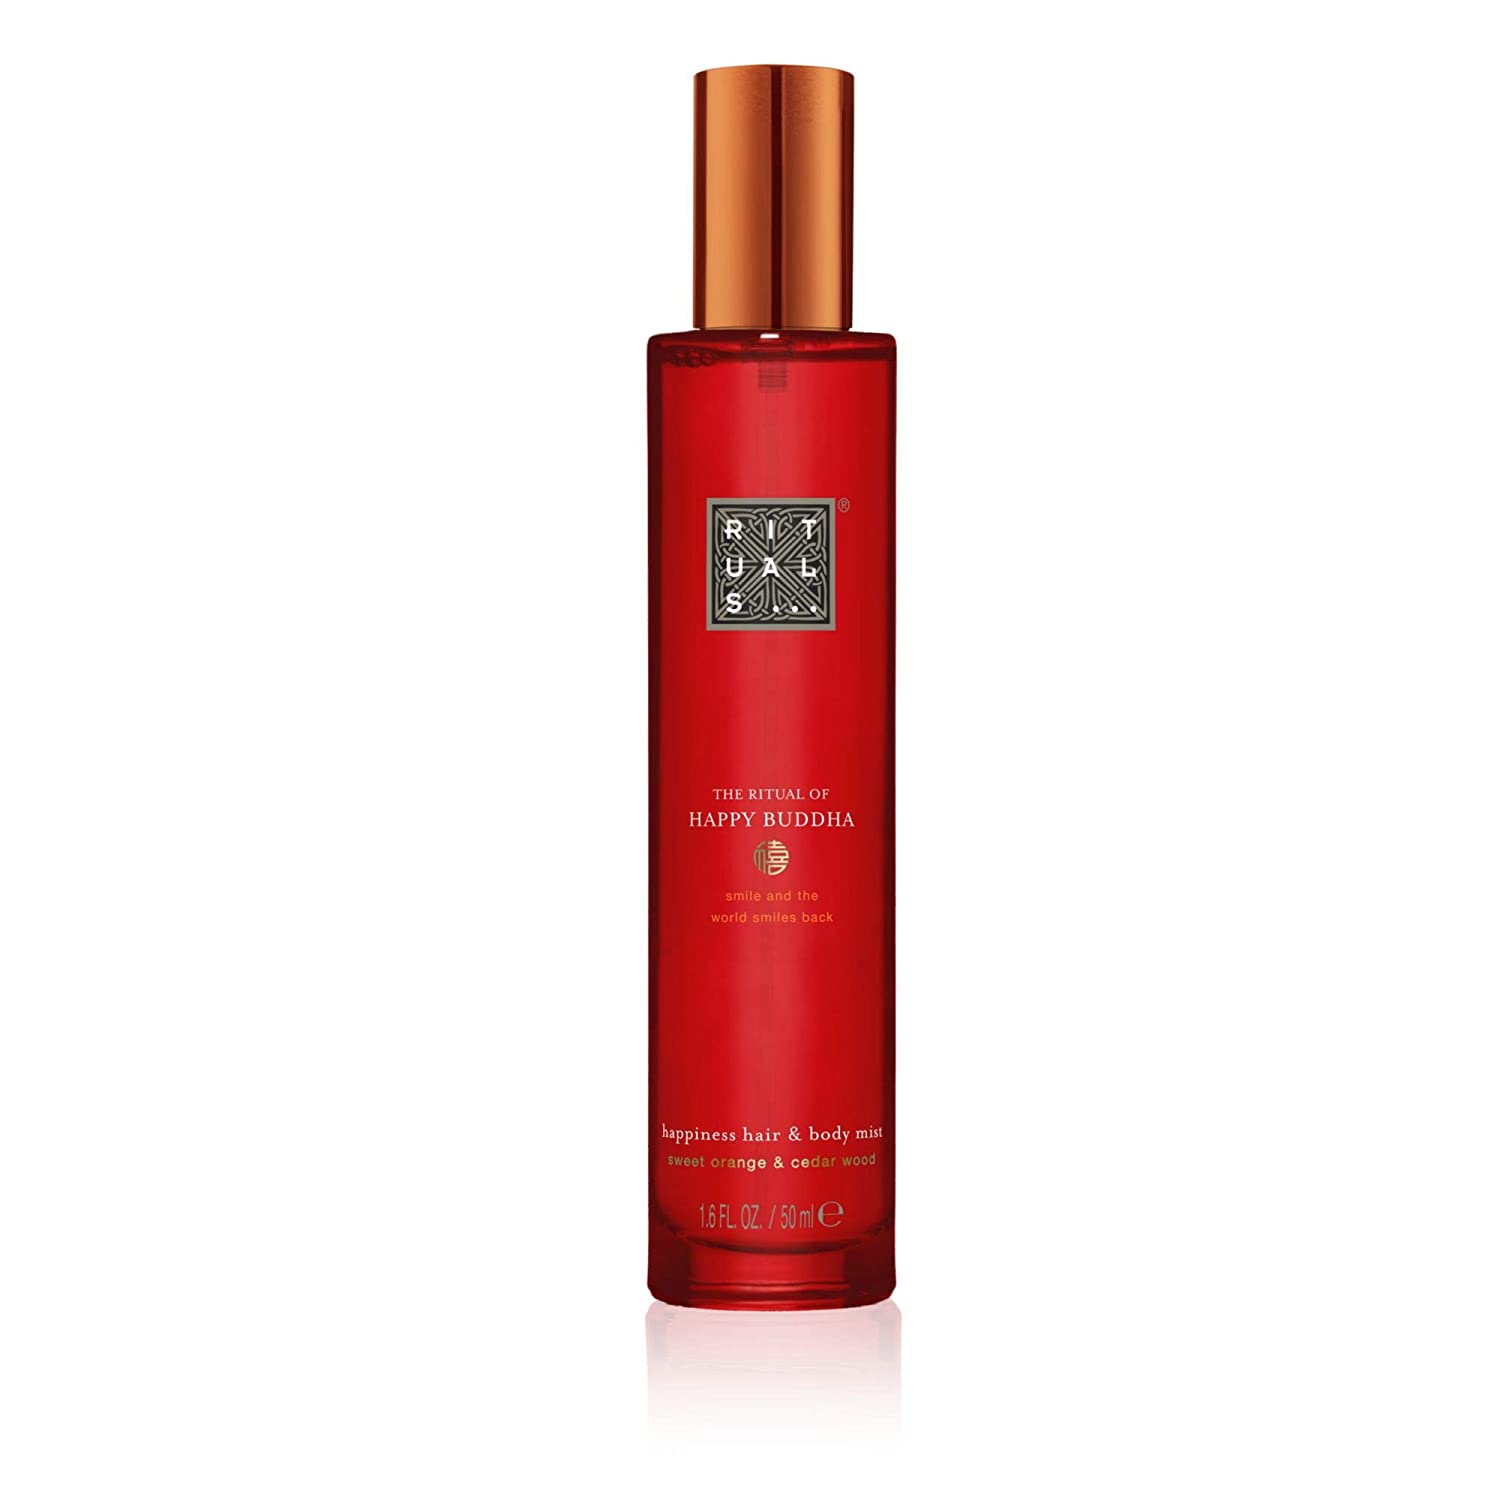 RITUALS The Rituals of Happy Buddha Hair & Body Mist,1.6 Fl Oz